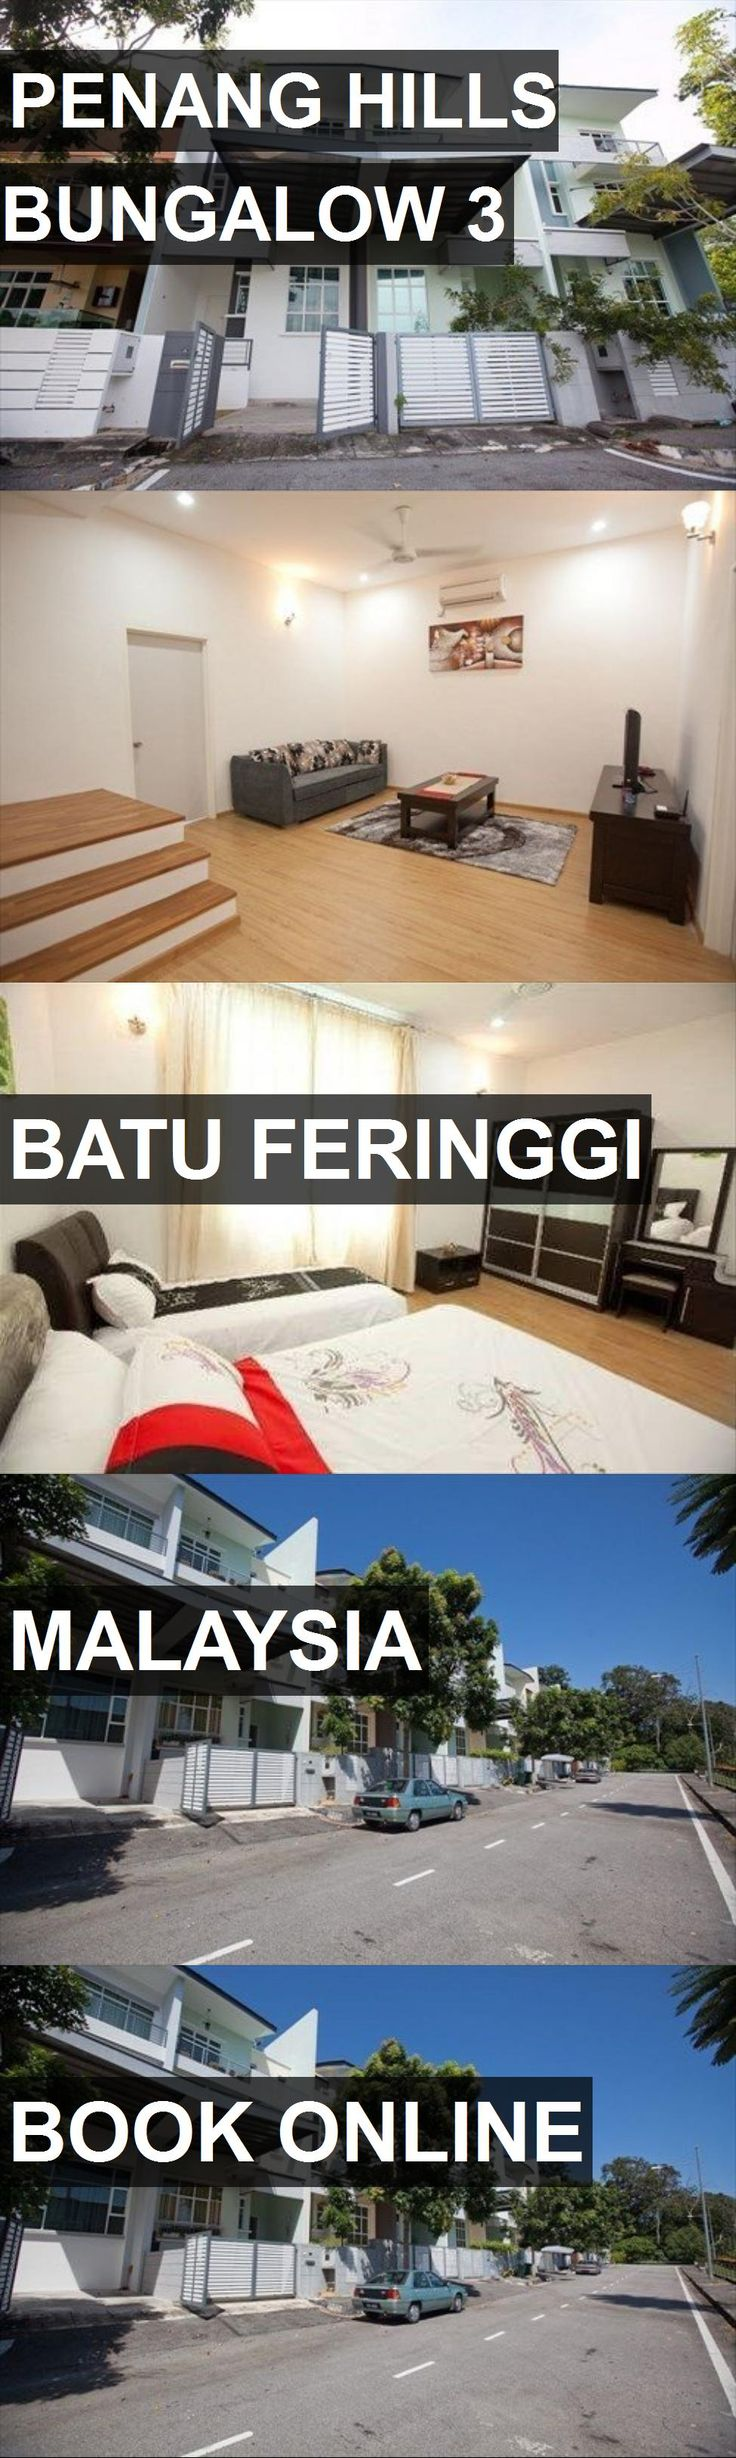 Hotel PENANG HILLS BUNGALOW 3 in Batu Feringgi, Malaysia. For more information, photos, reviews and best prices please follow the link. #Malaysia #BatuFeringgi #travel #vacation #hotel